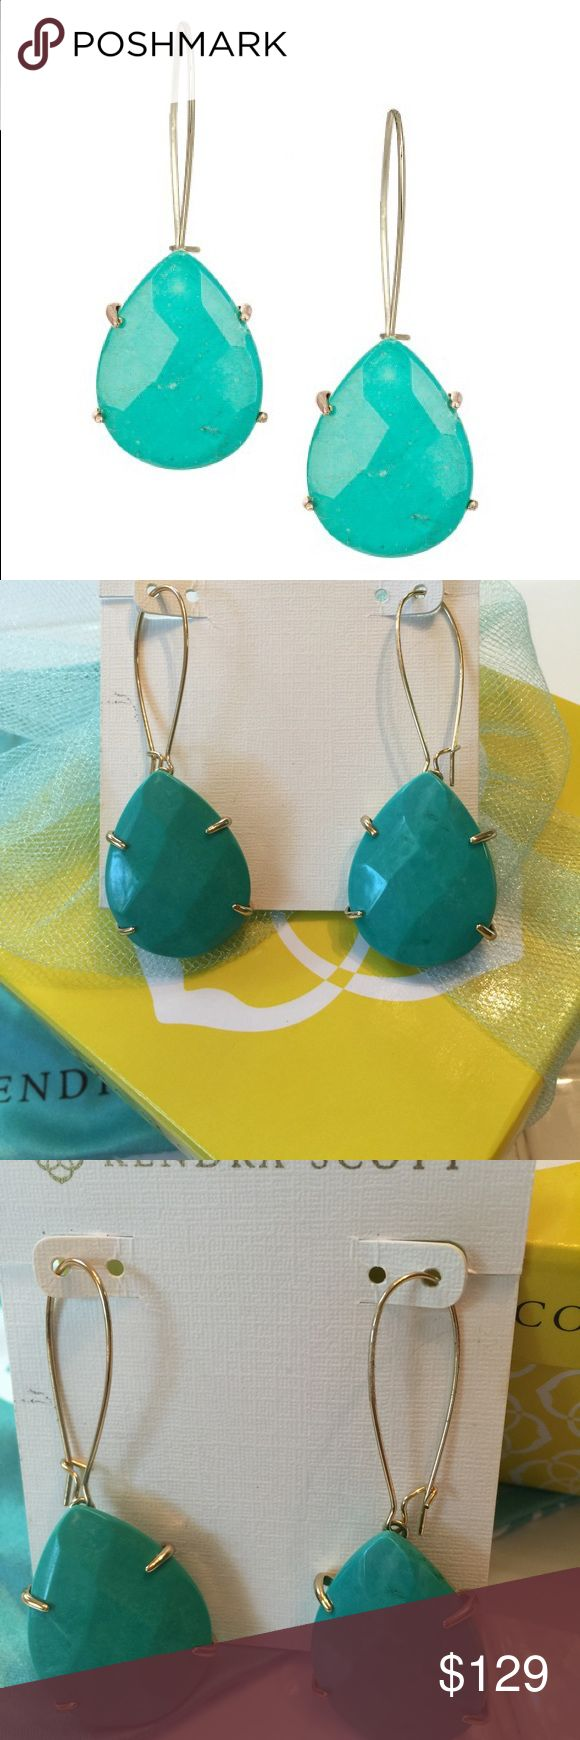 💕SALE PENDING💕NWT Kendra Scott Allison EarTEAL Brand new with tags, very hard to find genuine  Kendra Scott Allison earrings in gorgeously rare teal! These are sold out everywhere! I bought them at the Kendra Scott store, they verified they are teal and not turquoise, and they are guaranteed authentic. Comes with genuine KS signature blue dustbag and care card. Please no trades and no lowballs😊 Kendra Scott Jewelry Earrings